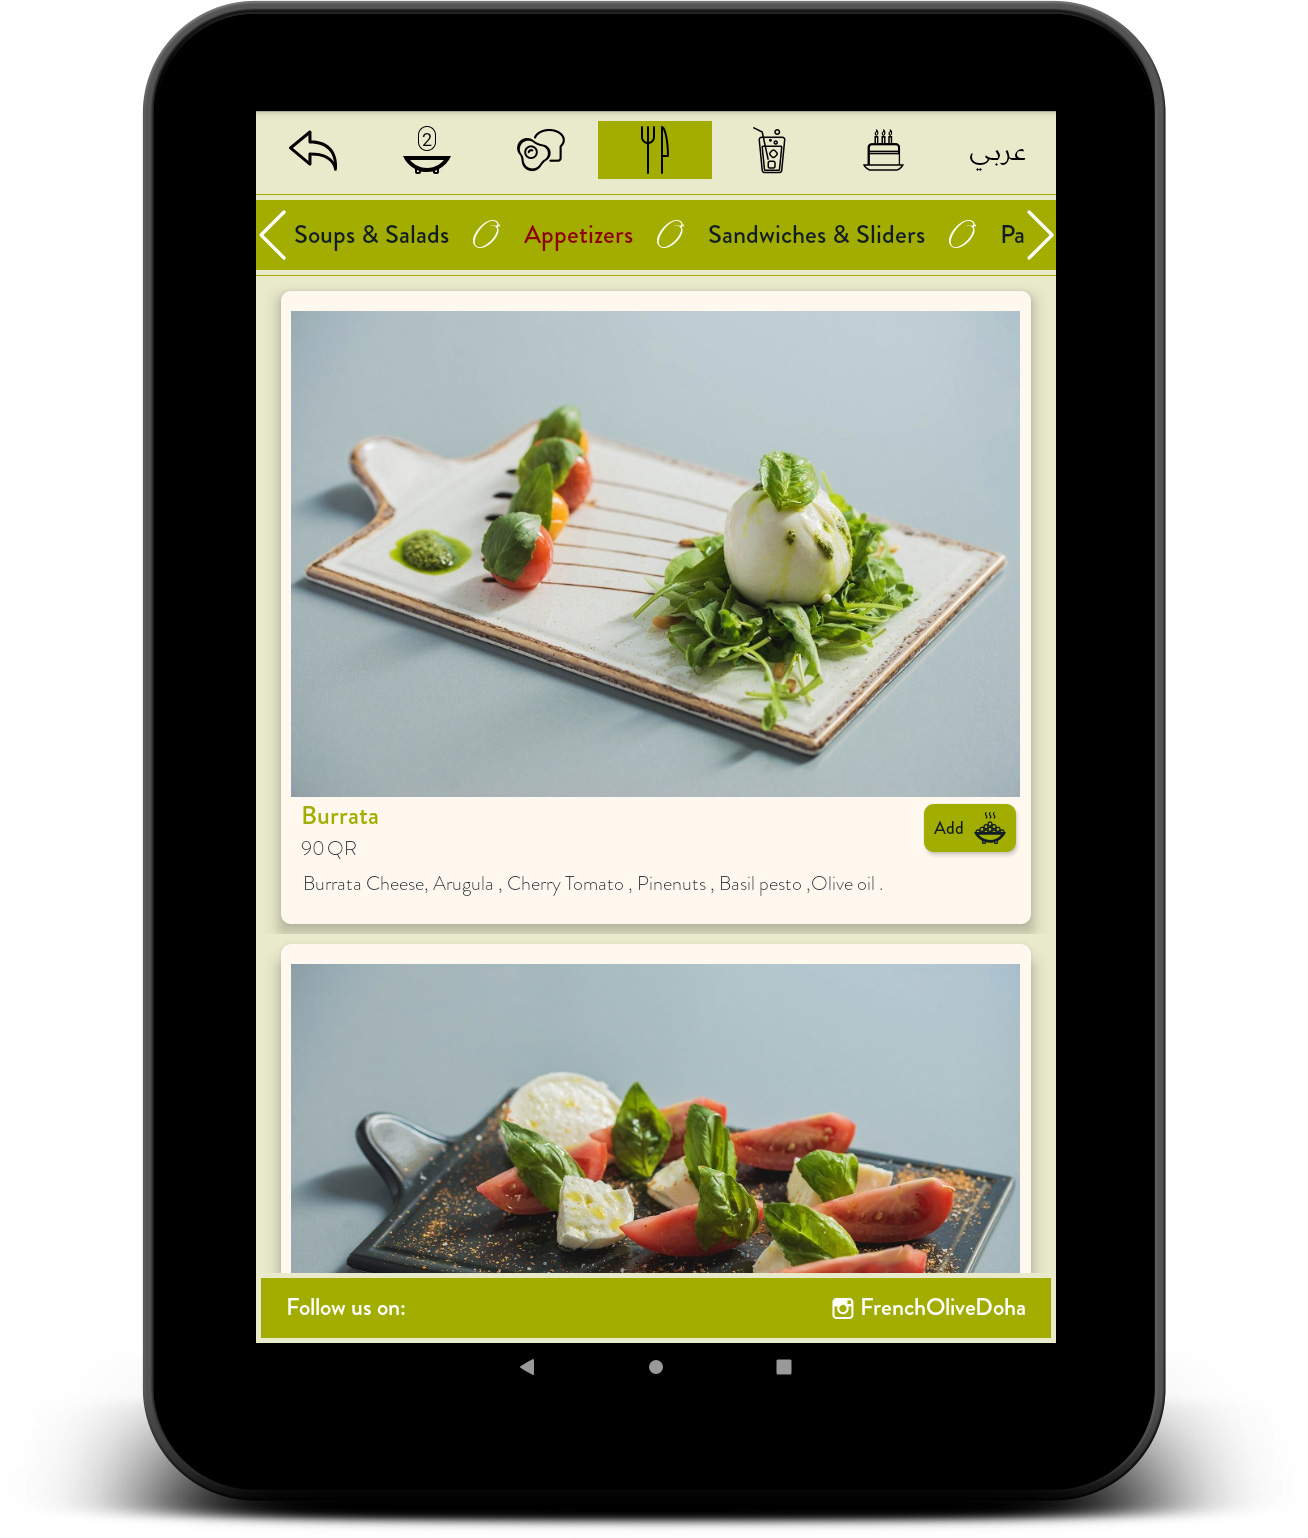 Cham Solutions & Programs - Menu 5in1 on Tablet - Universal Edition